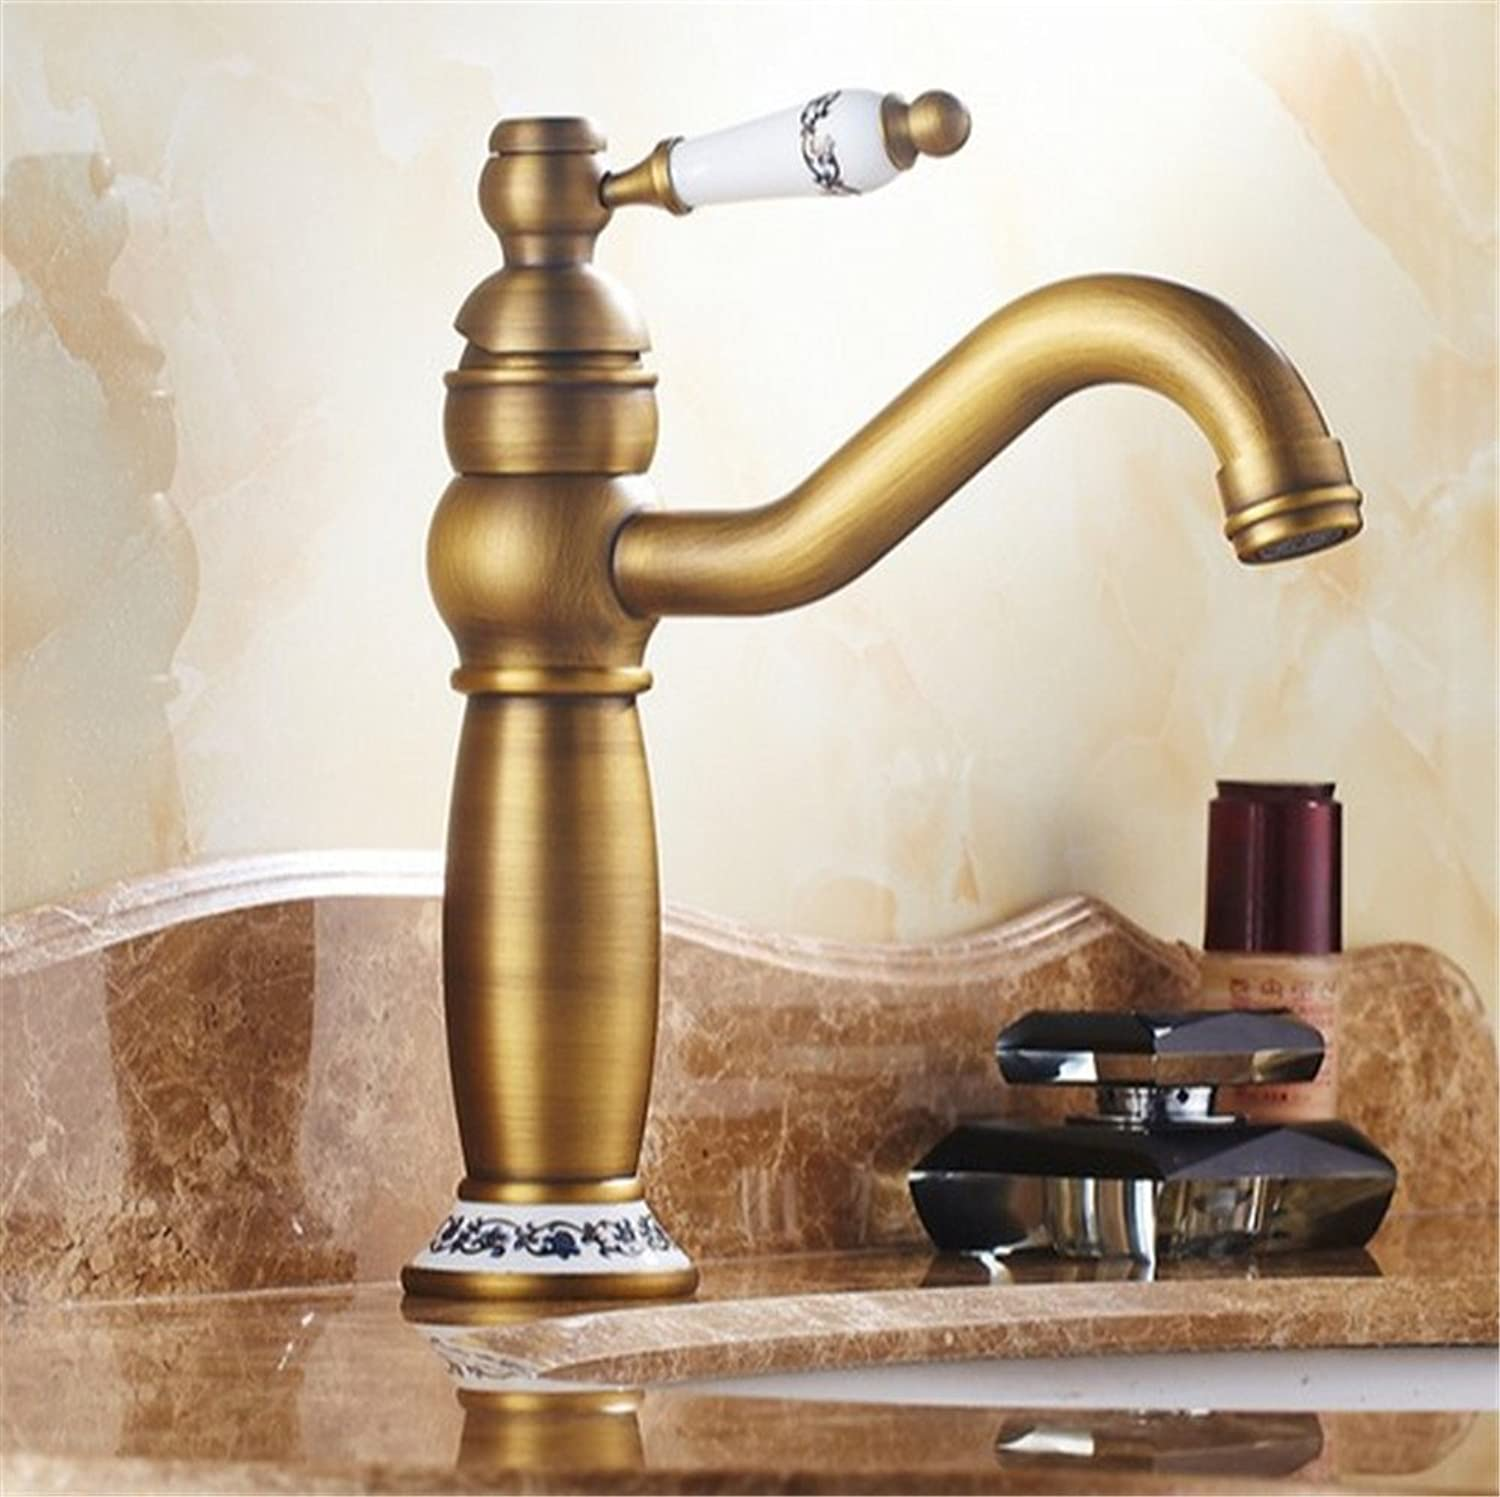 SYW European antique bathroom leader bluee and white porcelain bathroom all copper faucets washbasin cold and hot faucets.